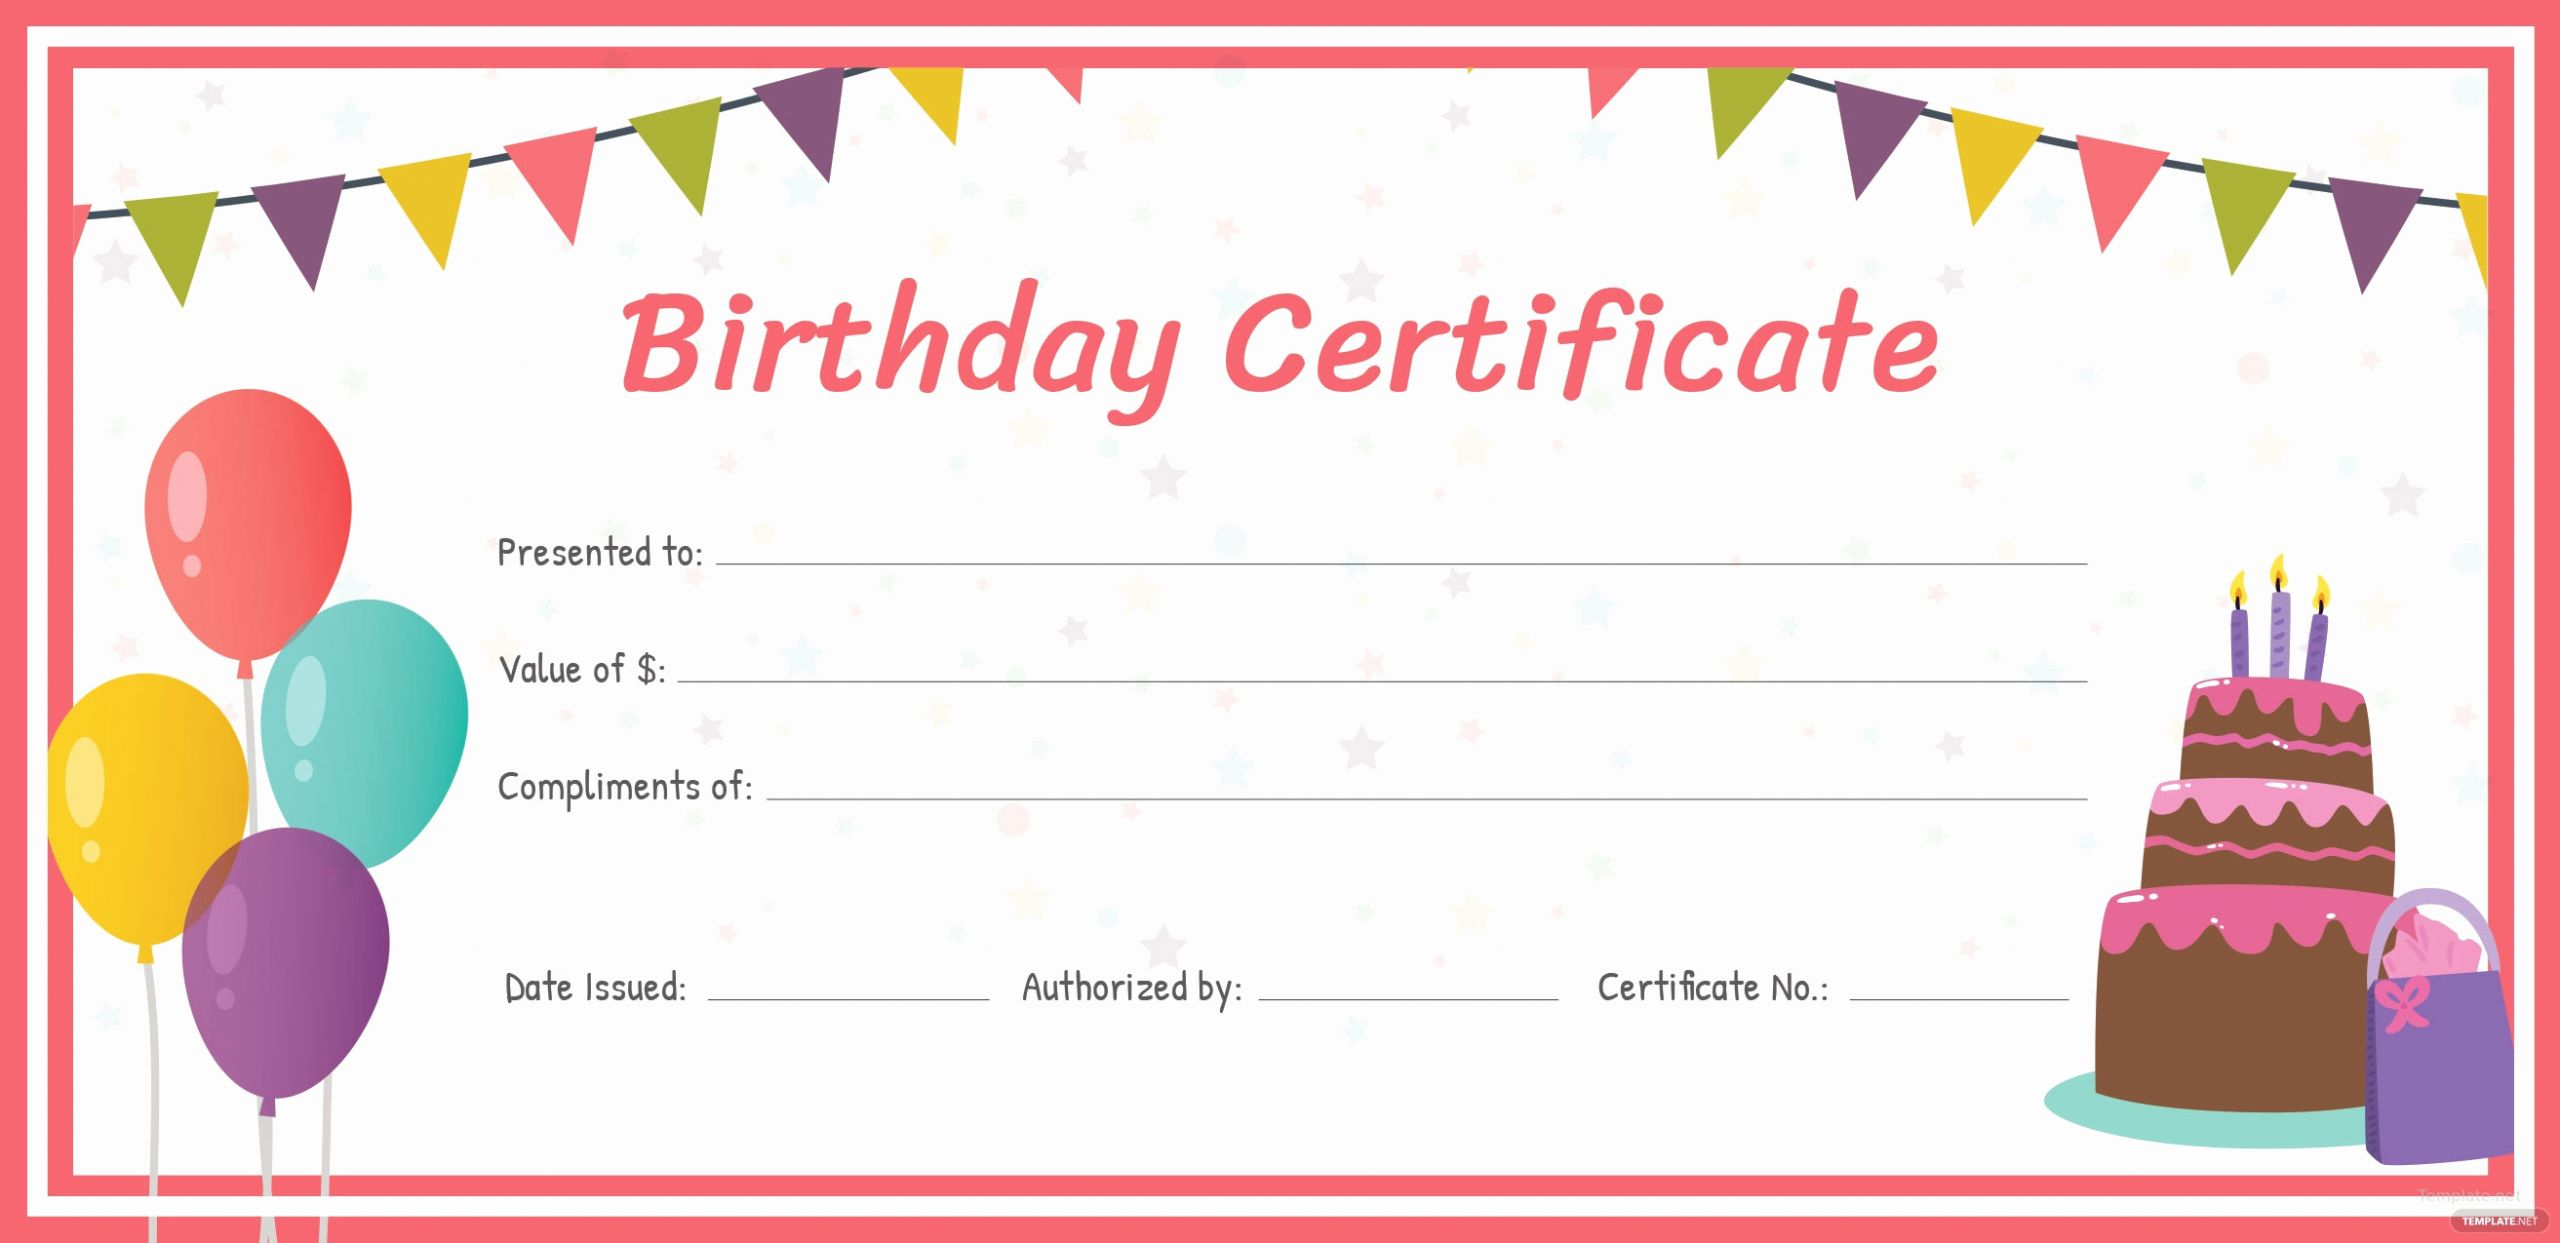 Template for A Gift Certificate Awesome Free Birthday Gift Certificate Template In Adobe